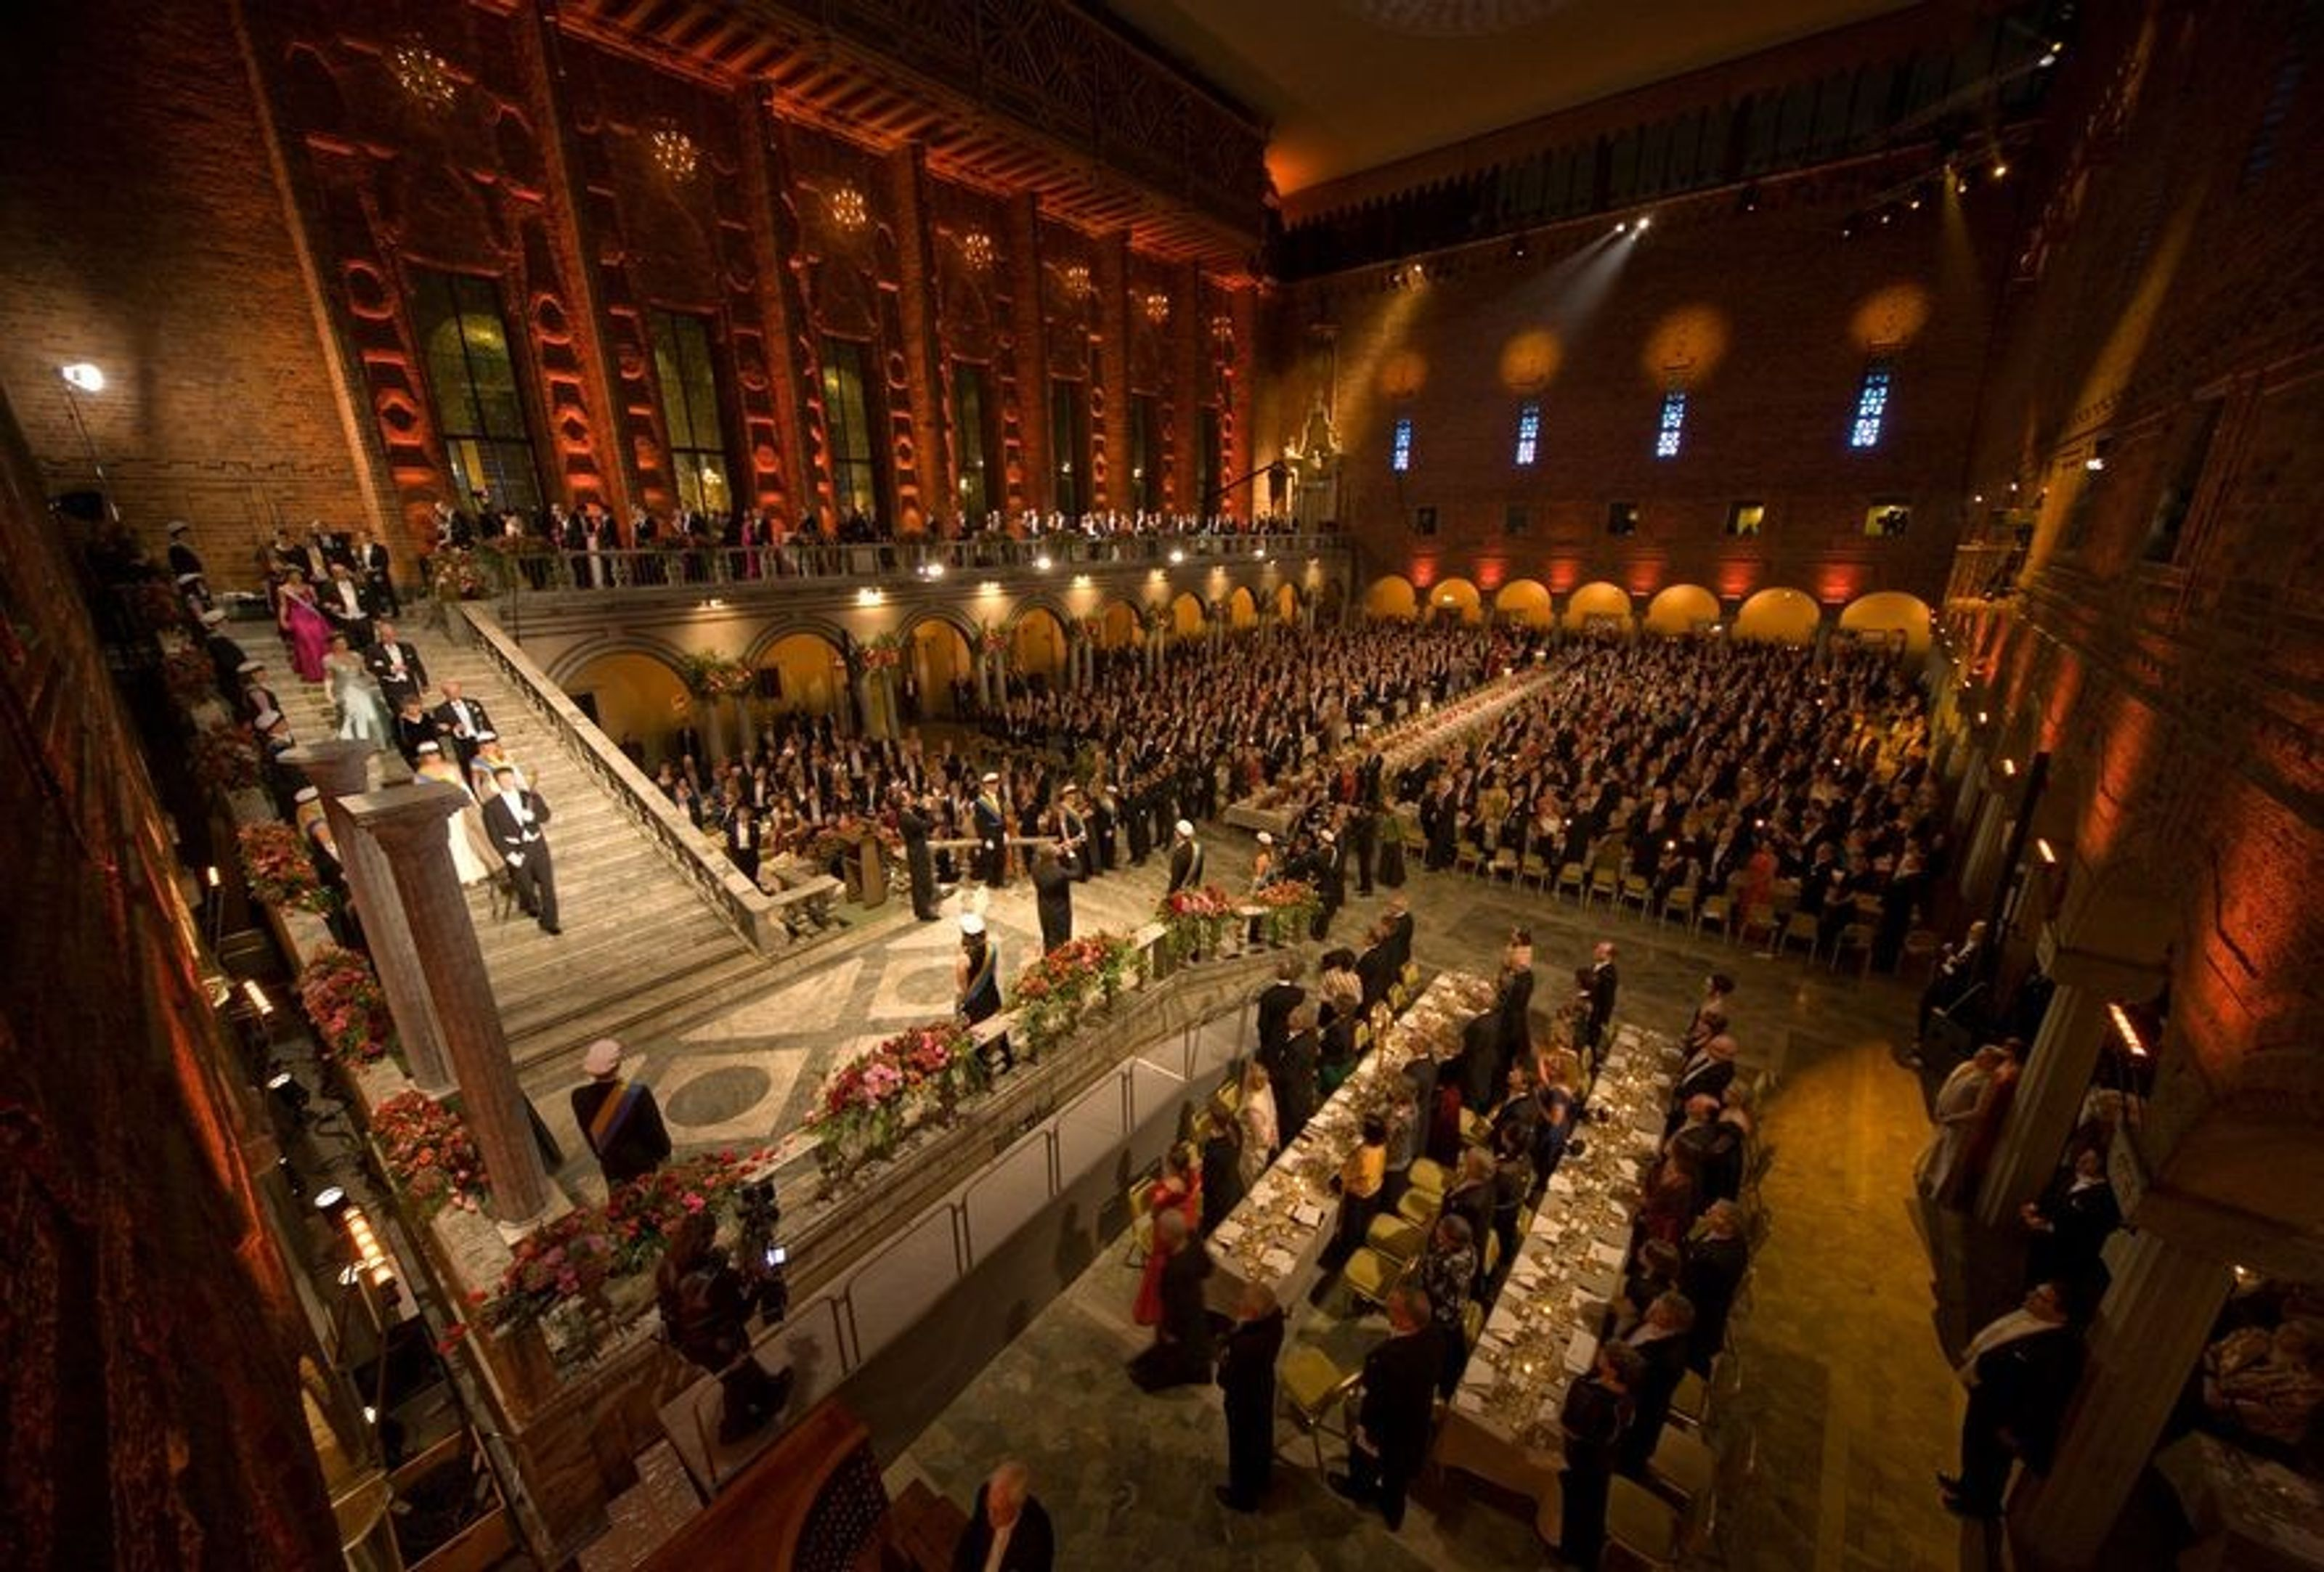 Sweden's King Carl Gustav and Queen Silvia arrive at the Stadshuset's cavernous Blue Hall for the Nobel Banquet